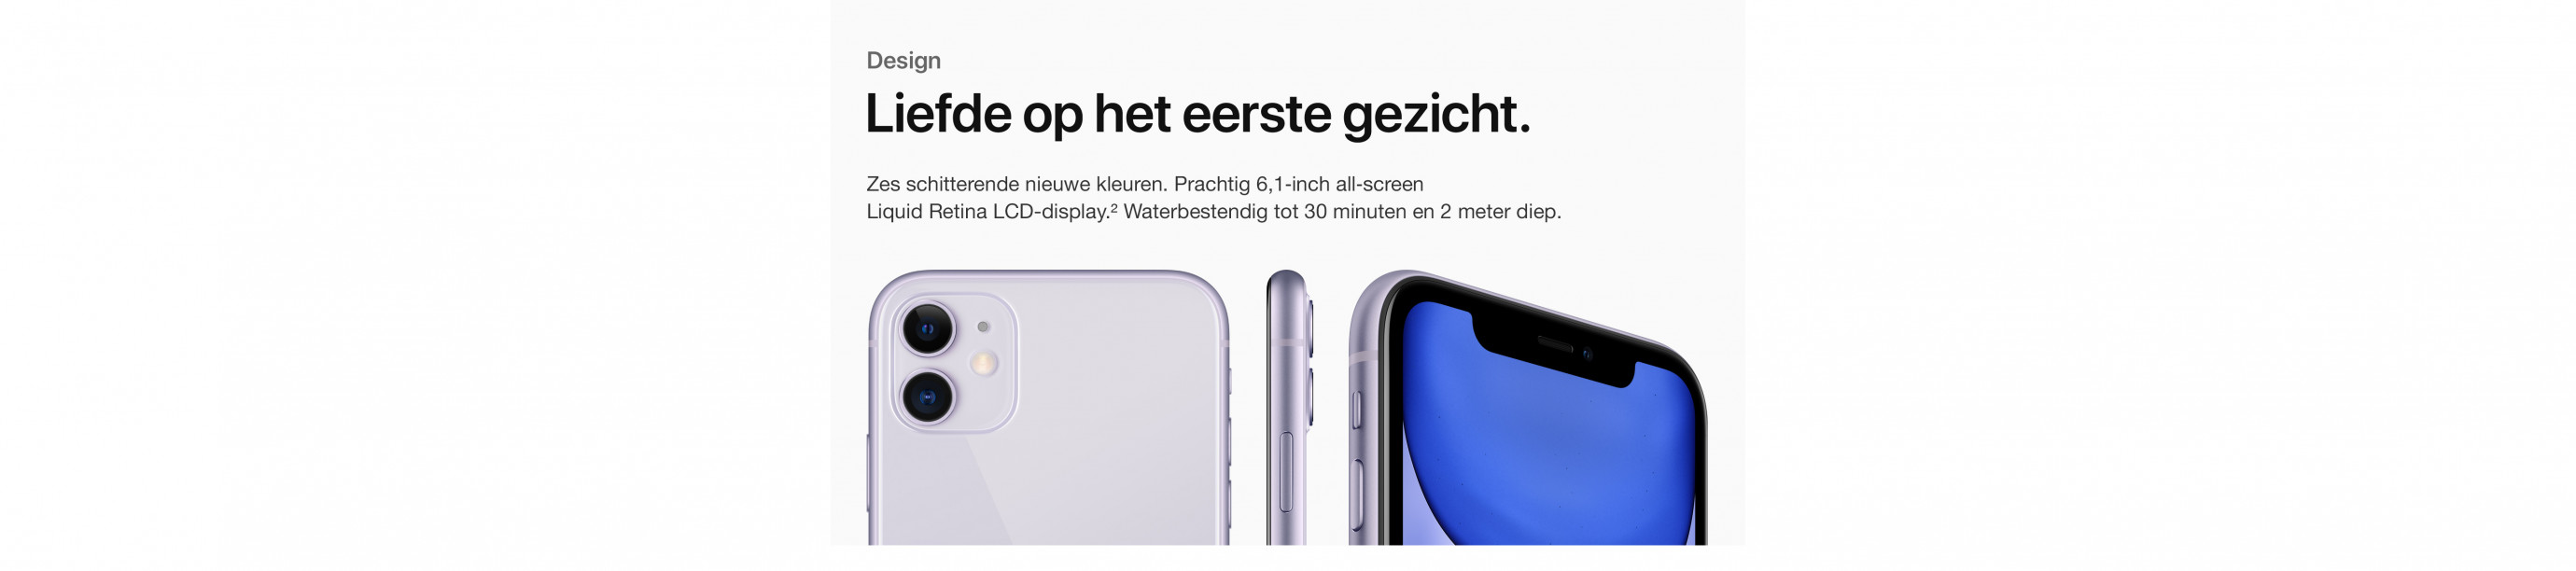 iPhone11-2-productpage_04.jpg